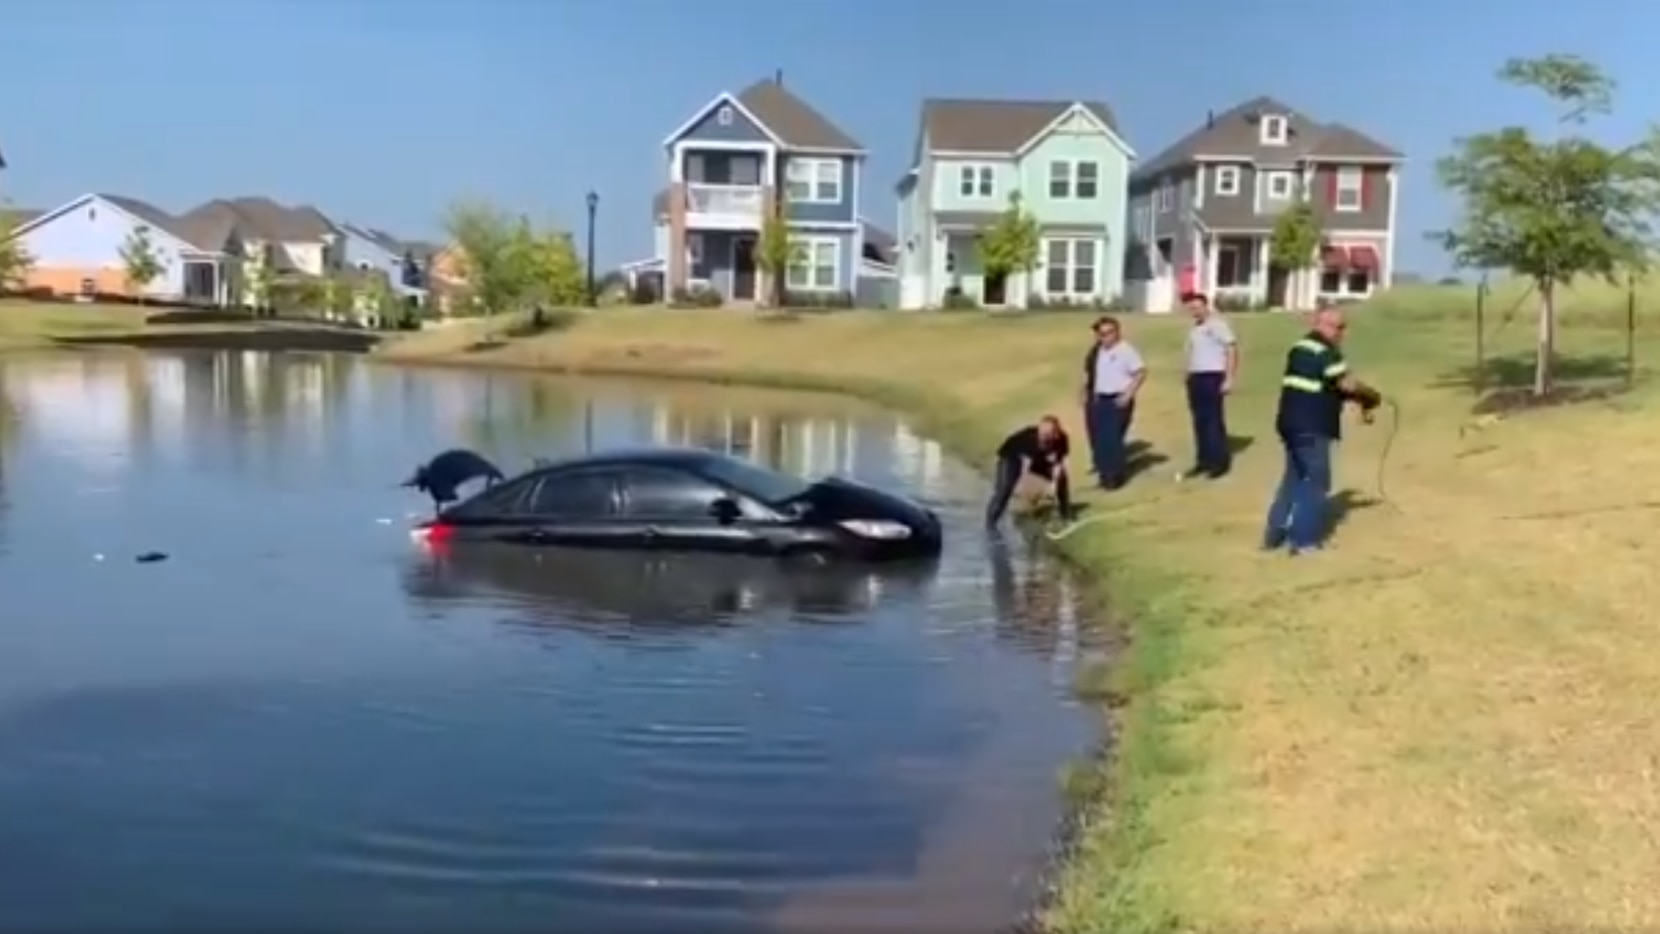 A black sedan is towed from a lake in North Richland Hills by officials Wednesday morning.